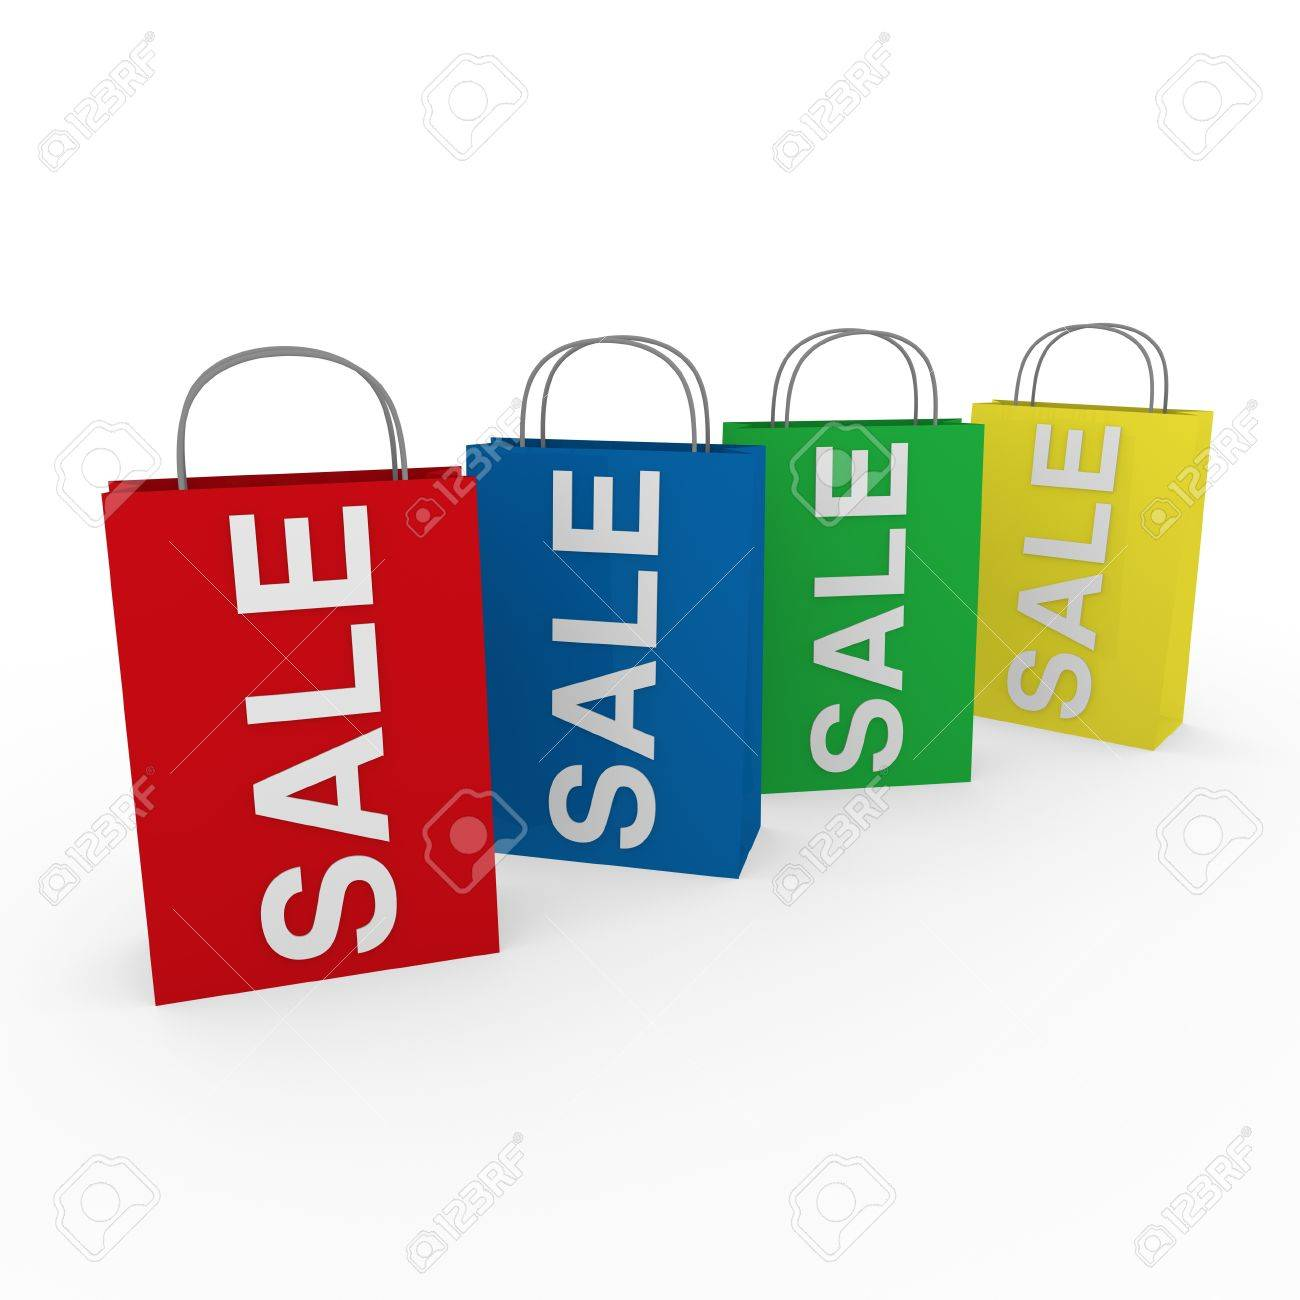 3d sale bag red retail shopping discount buy Stock Photo - 9611985